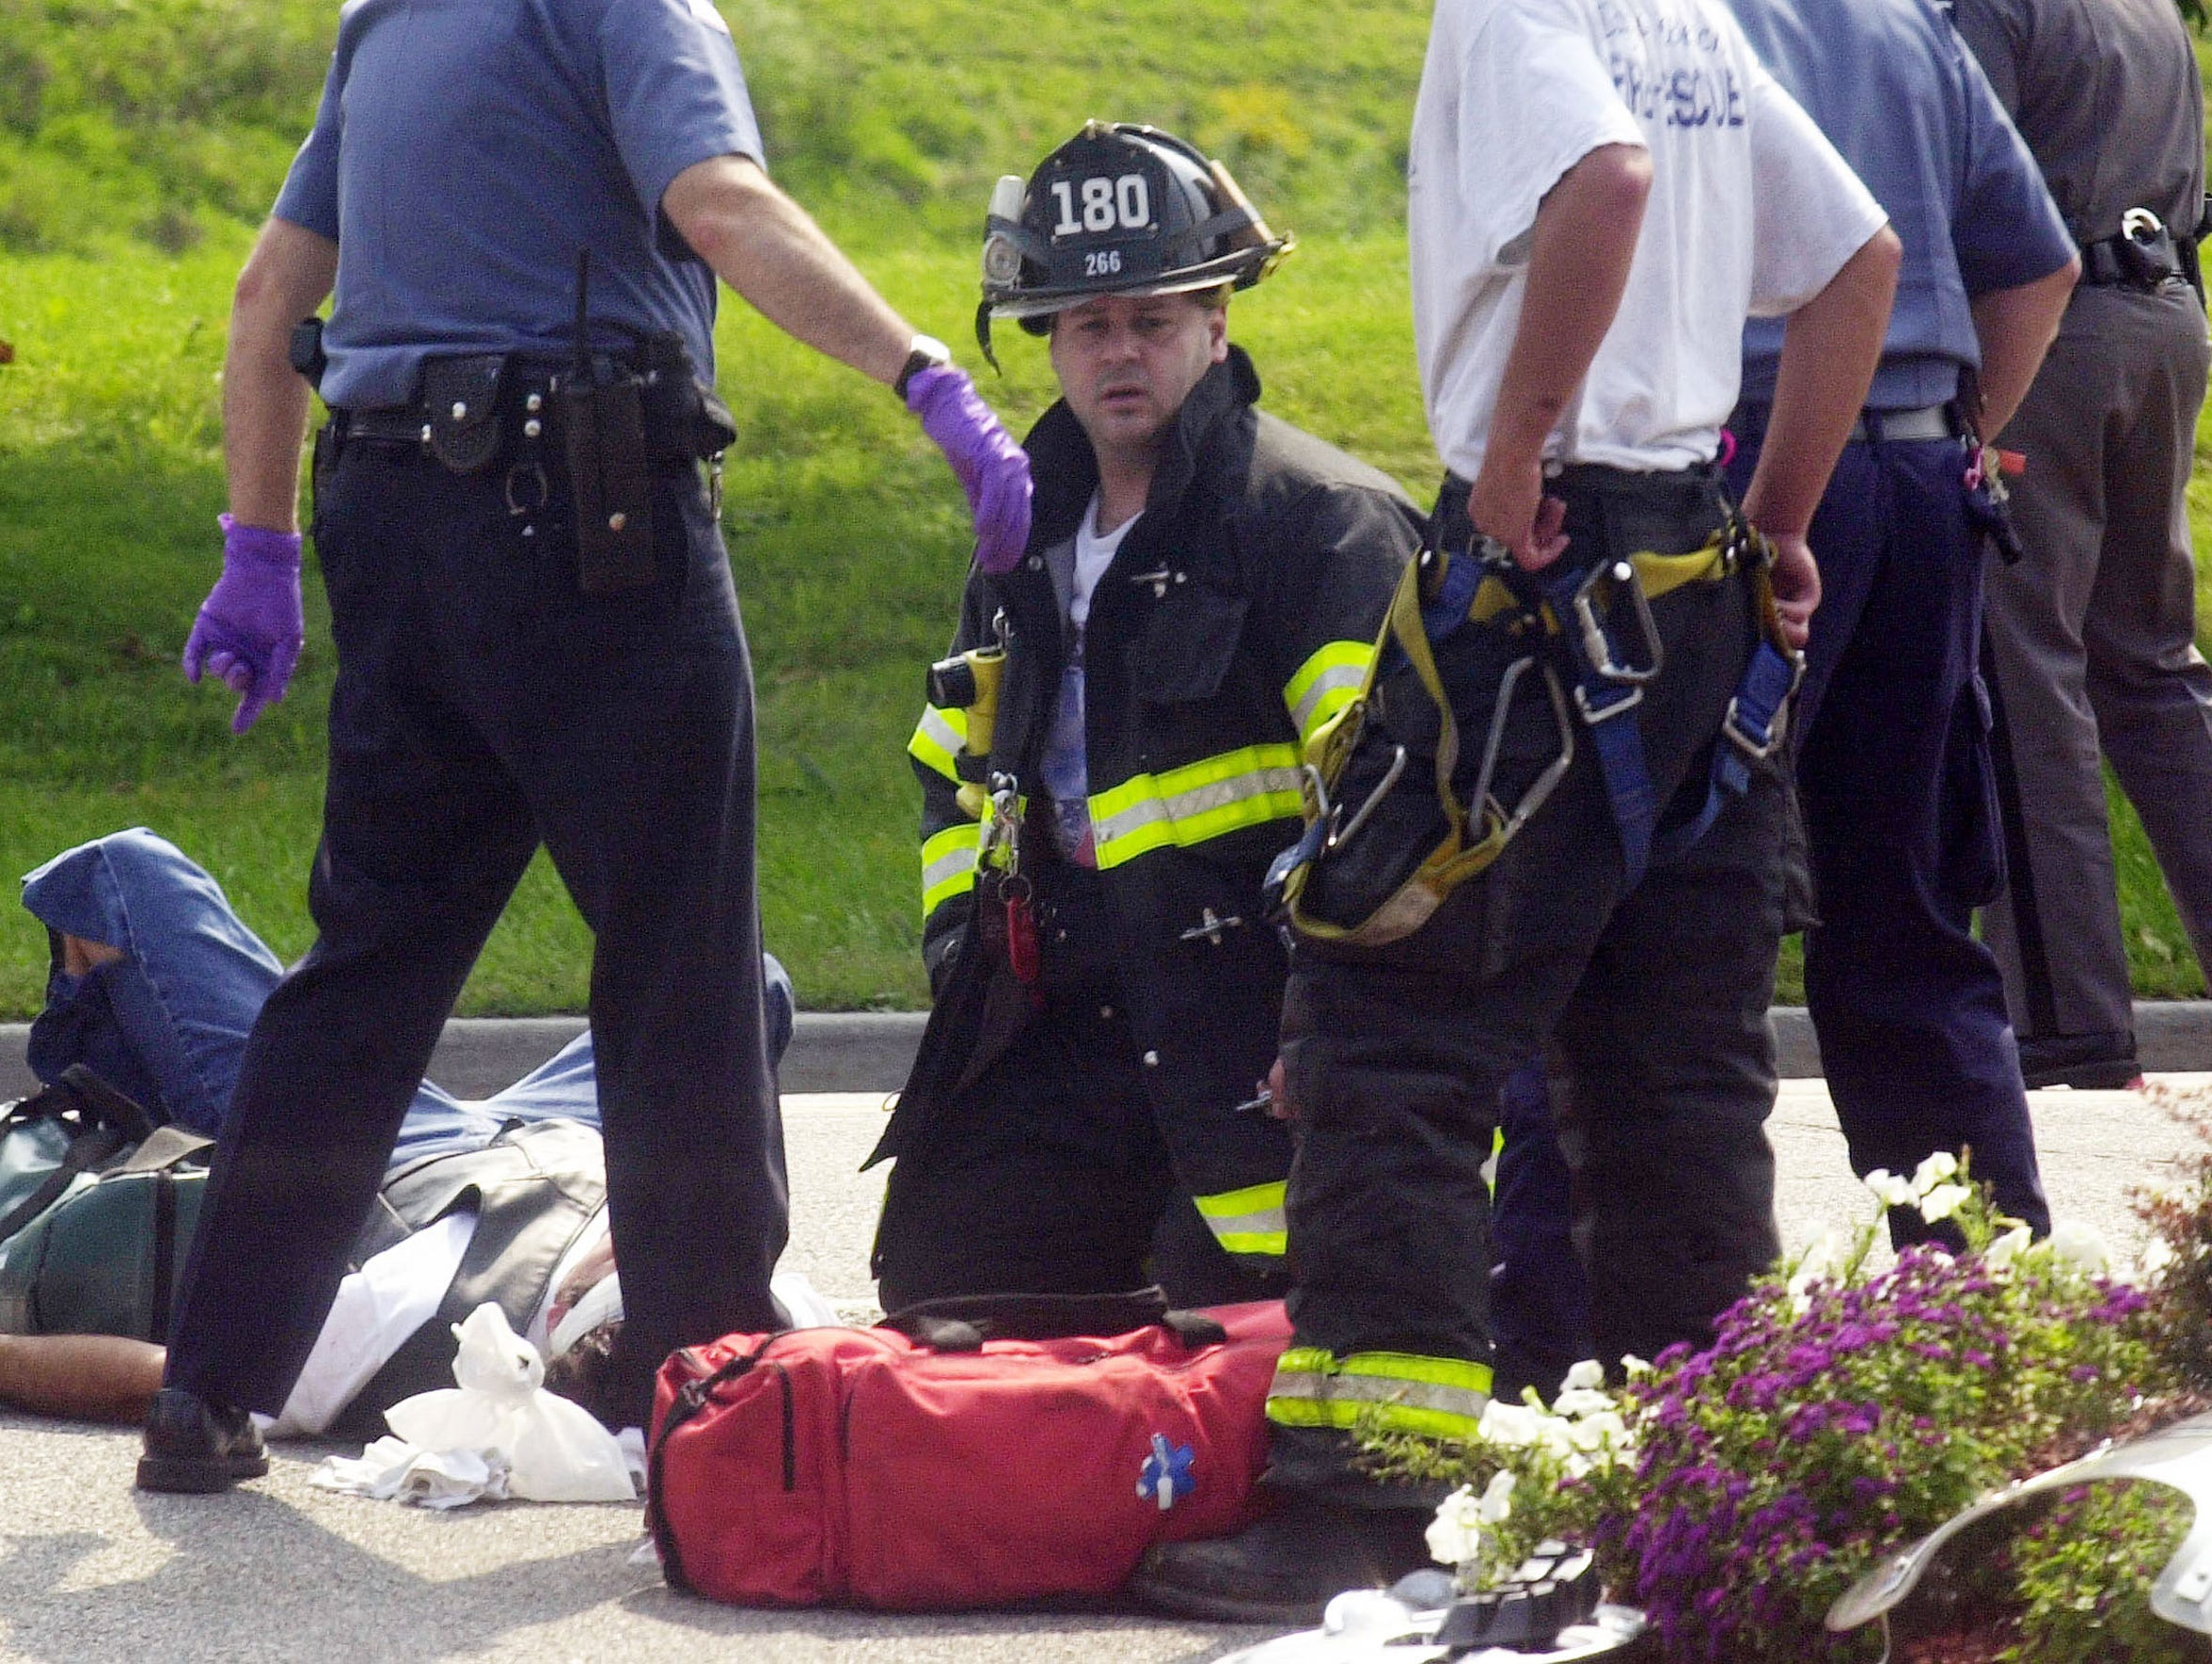 Somers firefighter Paul Jockimo tends to the victim